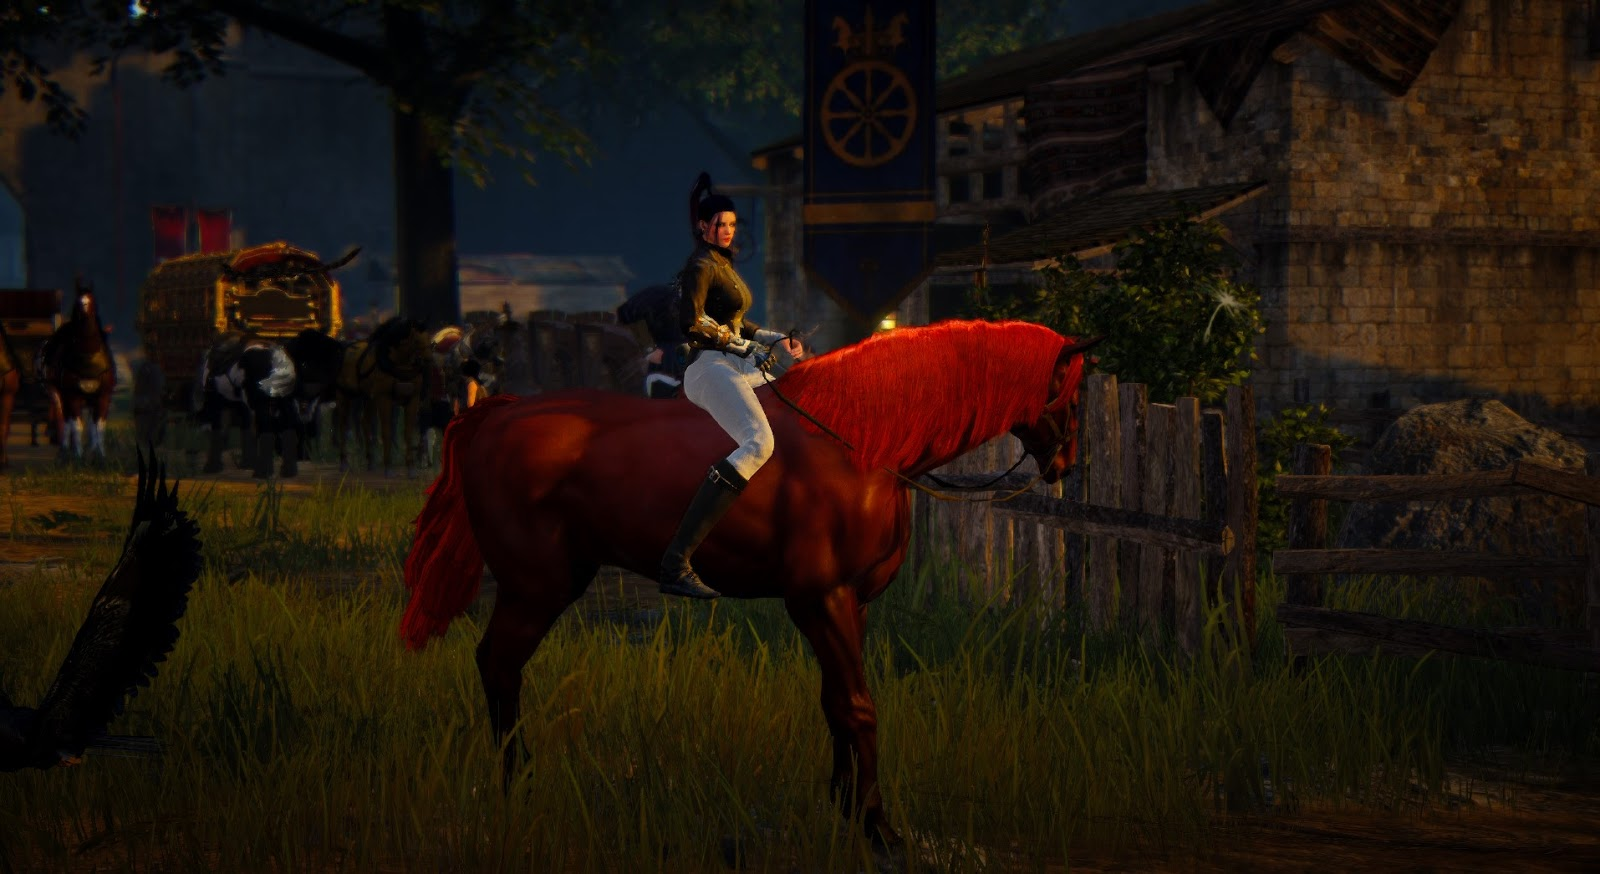 bdo how to get t7 horse